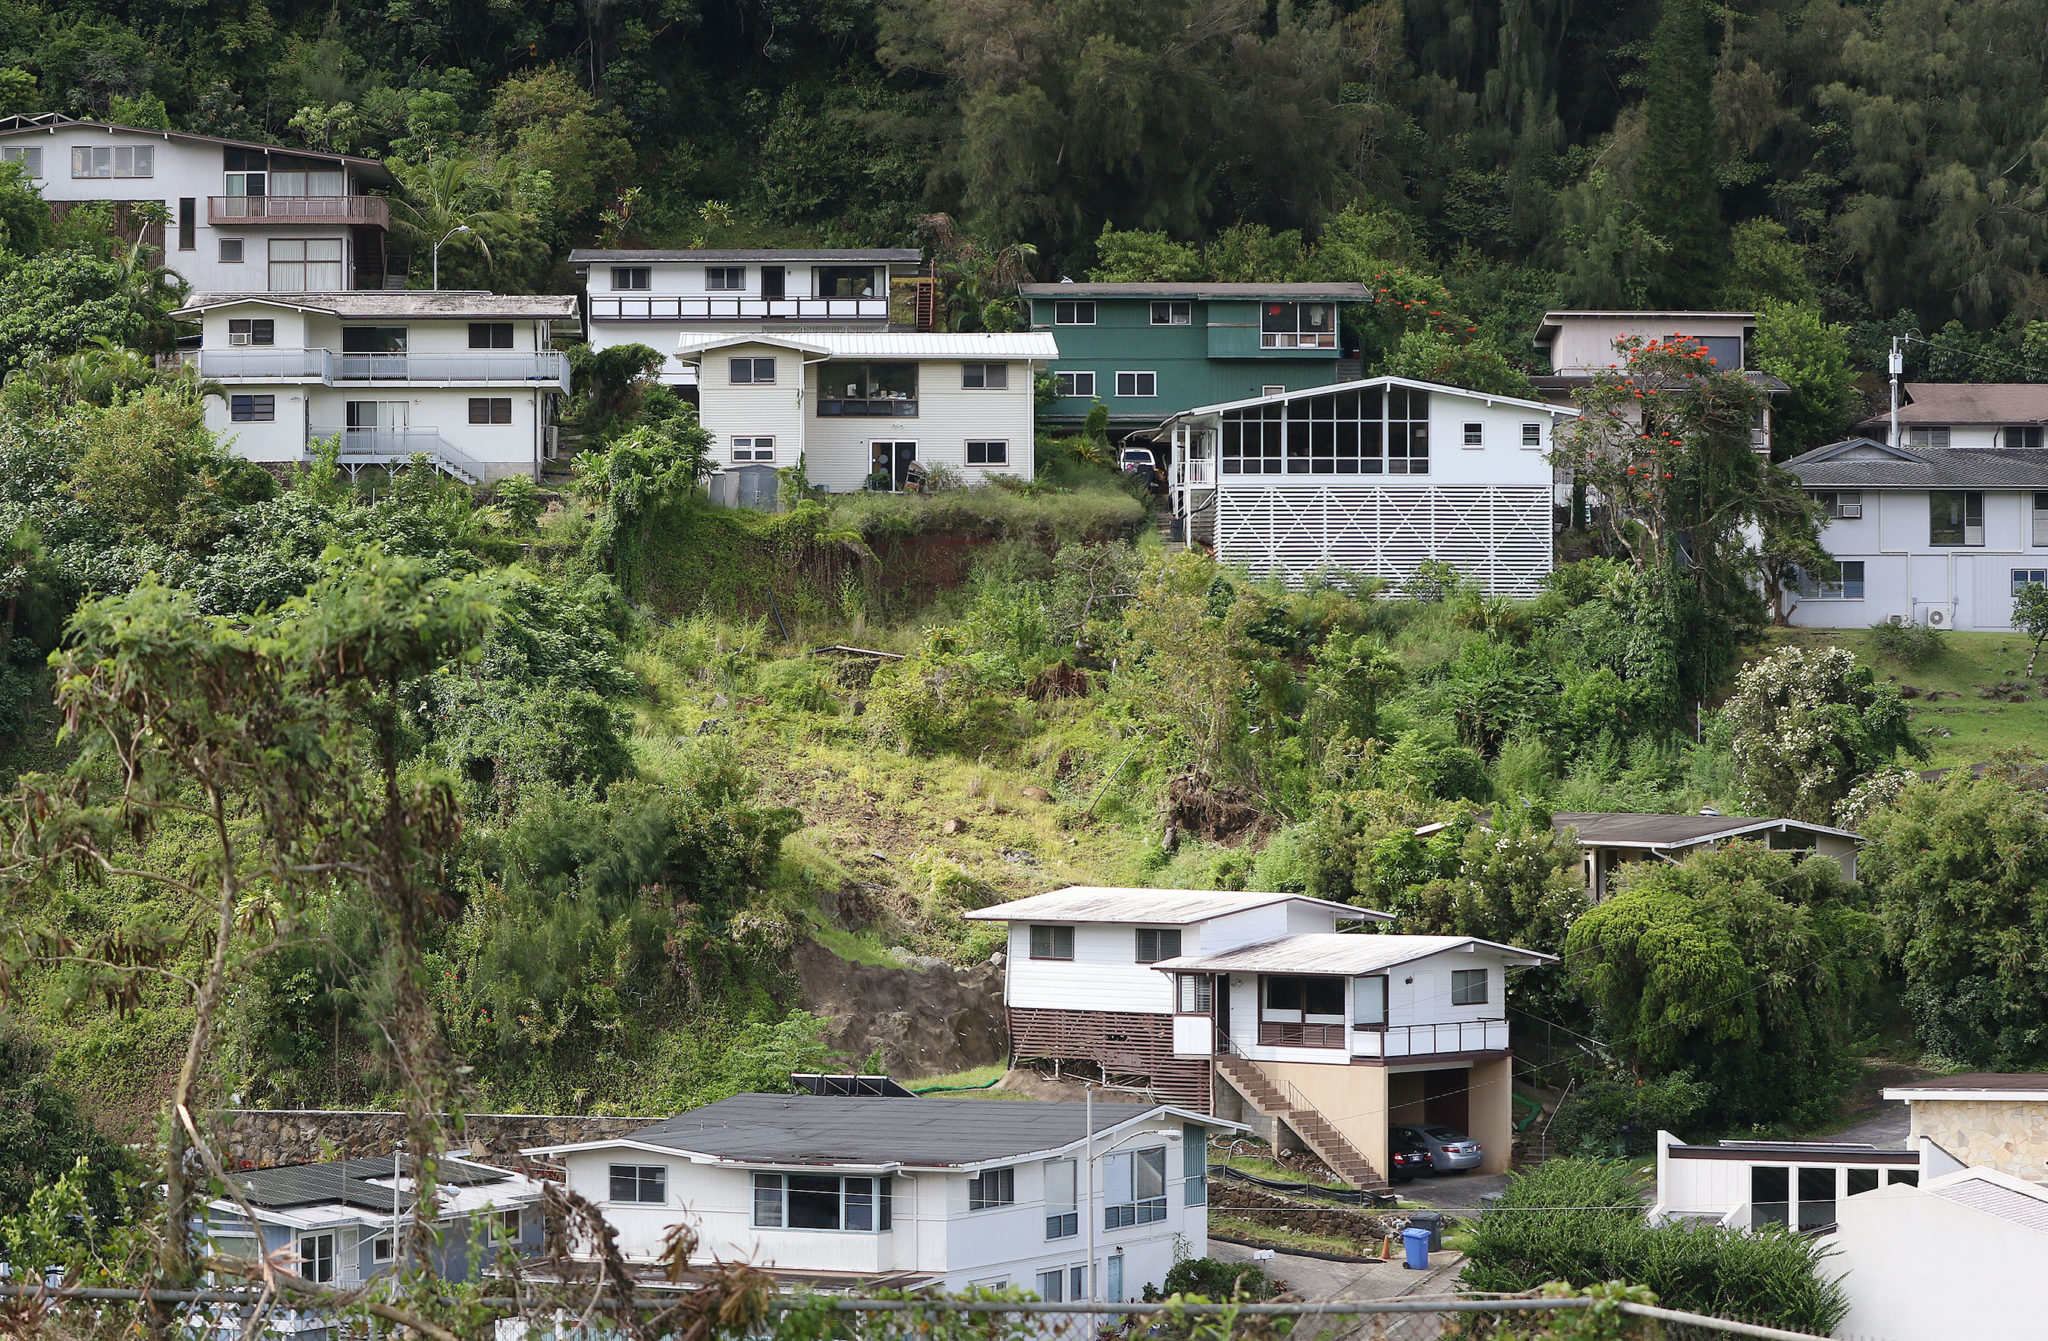 The house at right obscured by the trees is 274 Polihiwa Place with rear yard (landslide or uneven foundation) in center of photograph.